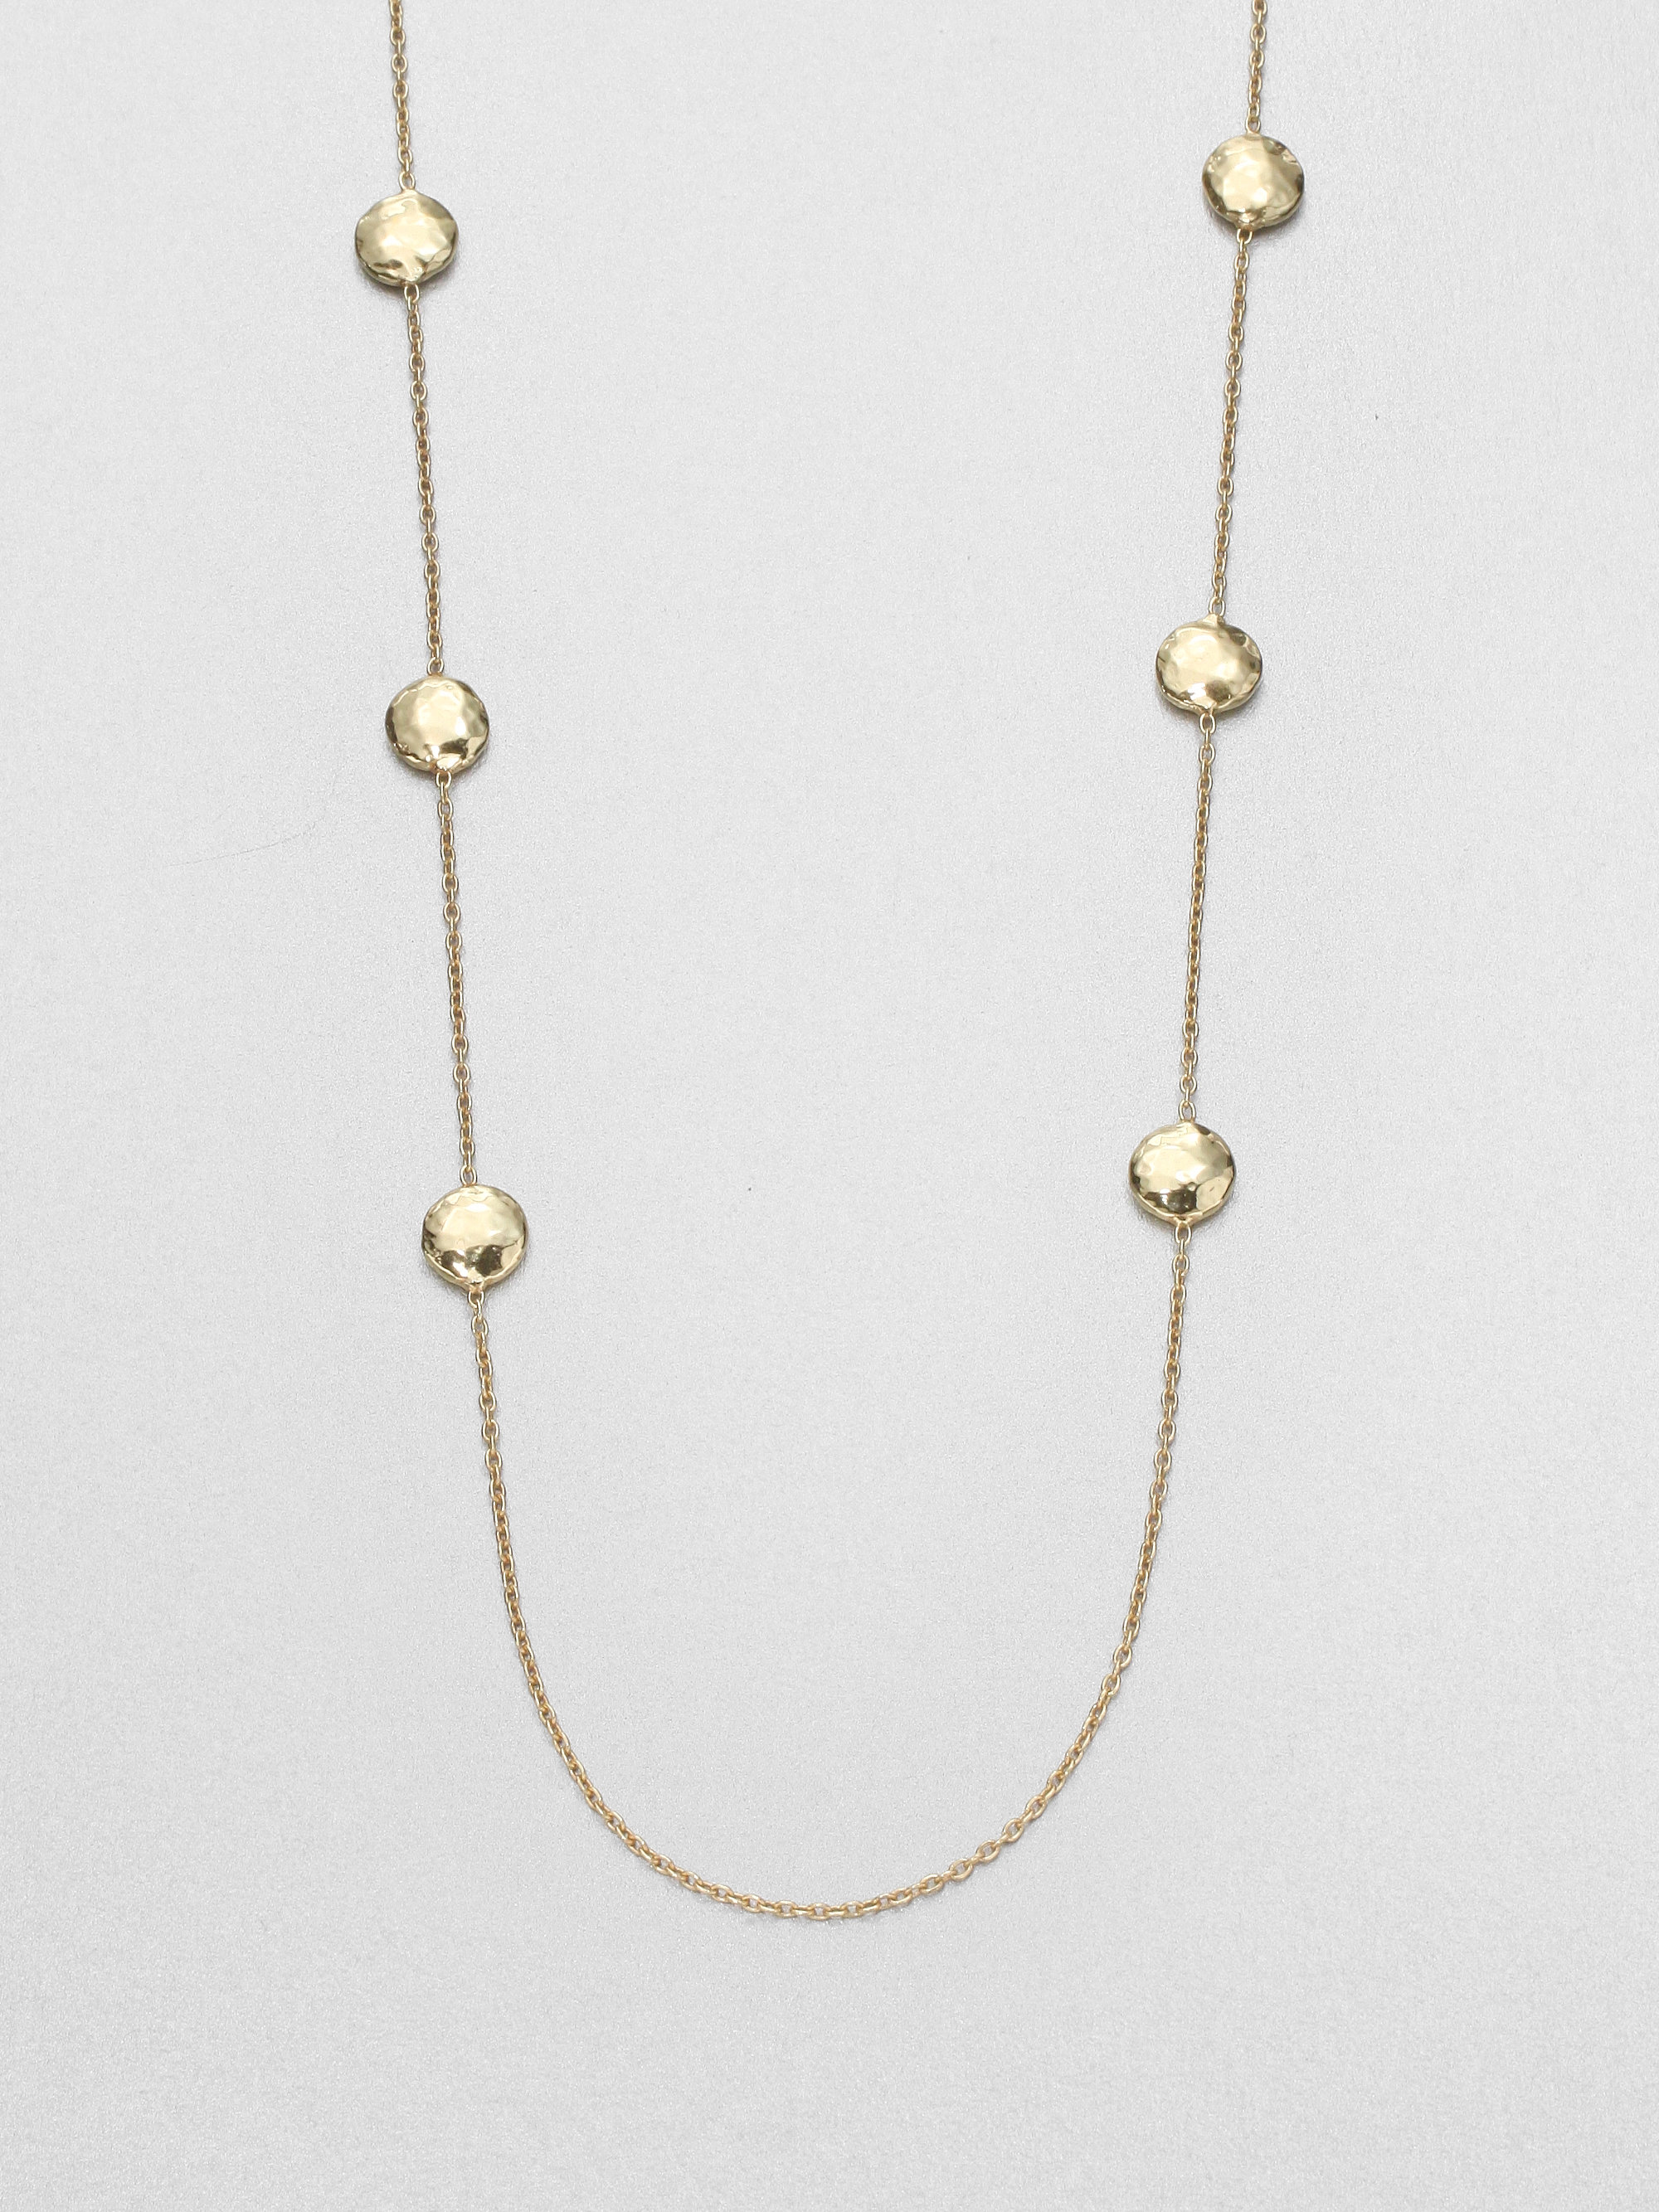 David Yurman Crossover Pendant With Gold On Chain Silveryellow Gold 1 besides  additionally Jenny Packham Jewel Bracelet Silver together with Anna Hibiscus 2 likewise Baguette Cluster Necklace Gunmetal. on cross purses and wallets